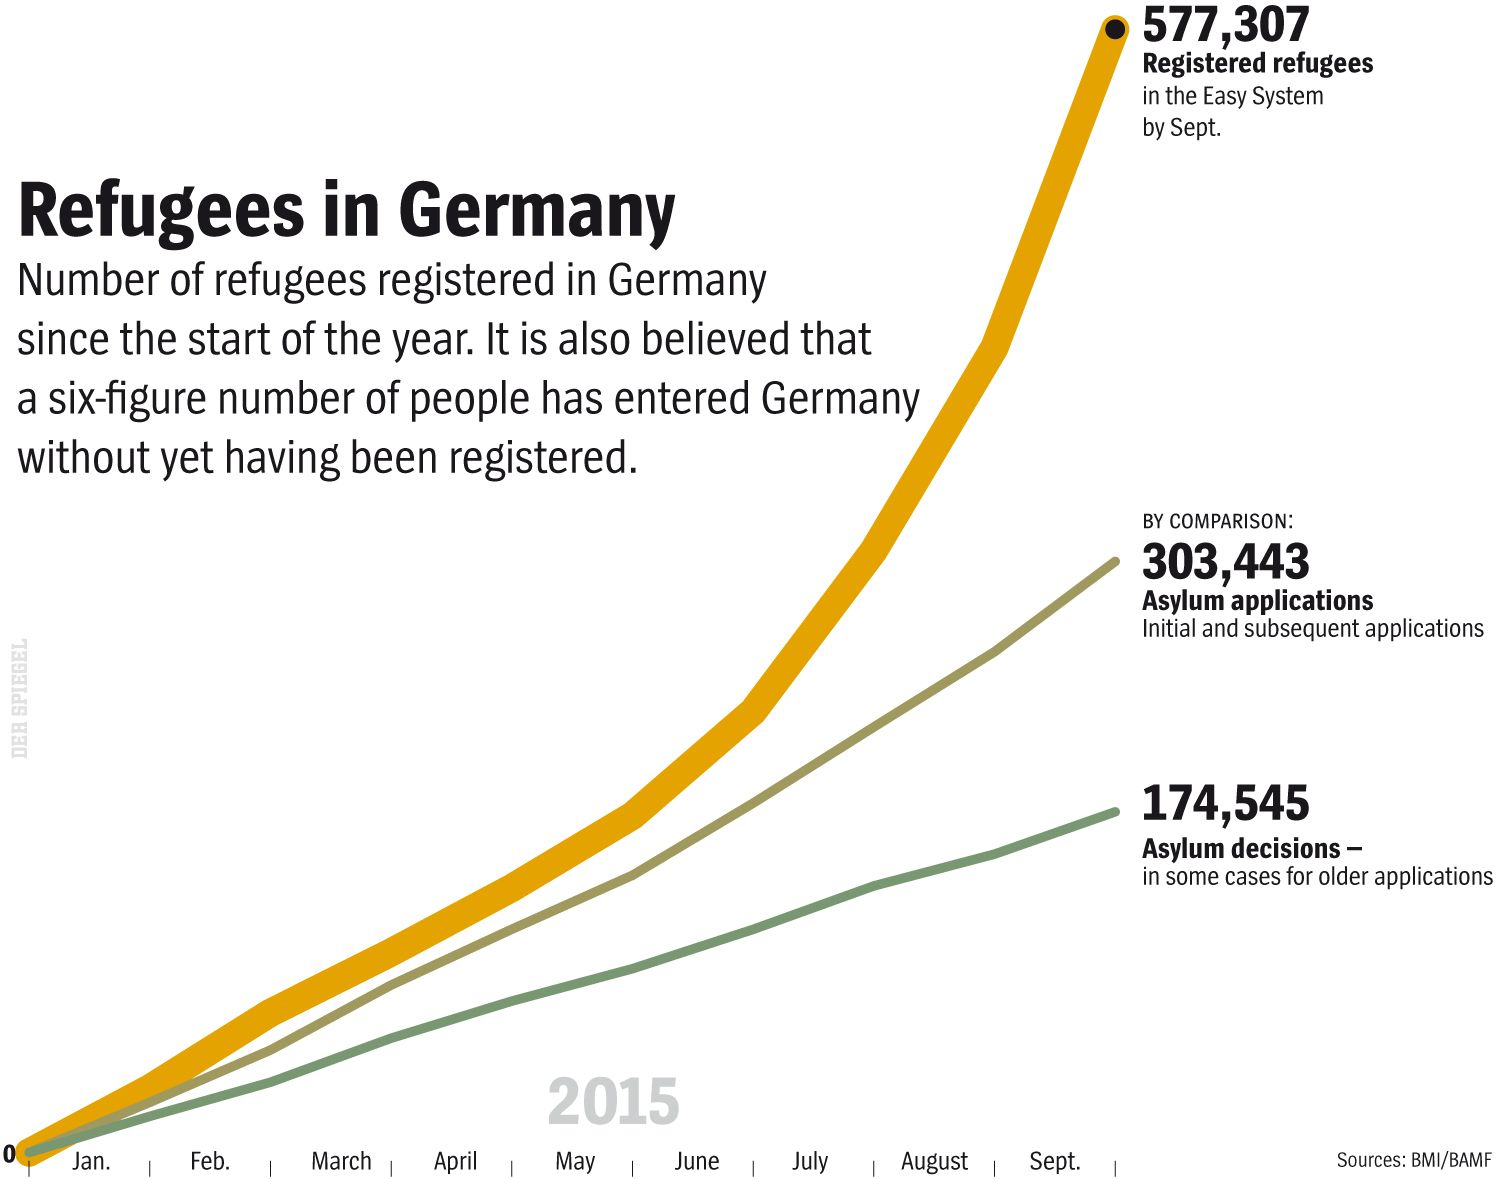 ENGLISH VERSION GRAFIK DER SPIEGEL 43/2015 Seite 29 - Refugees in Germany